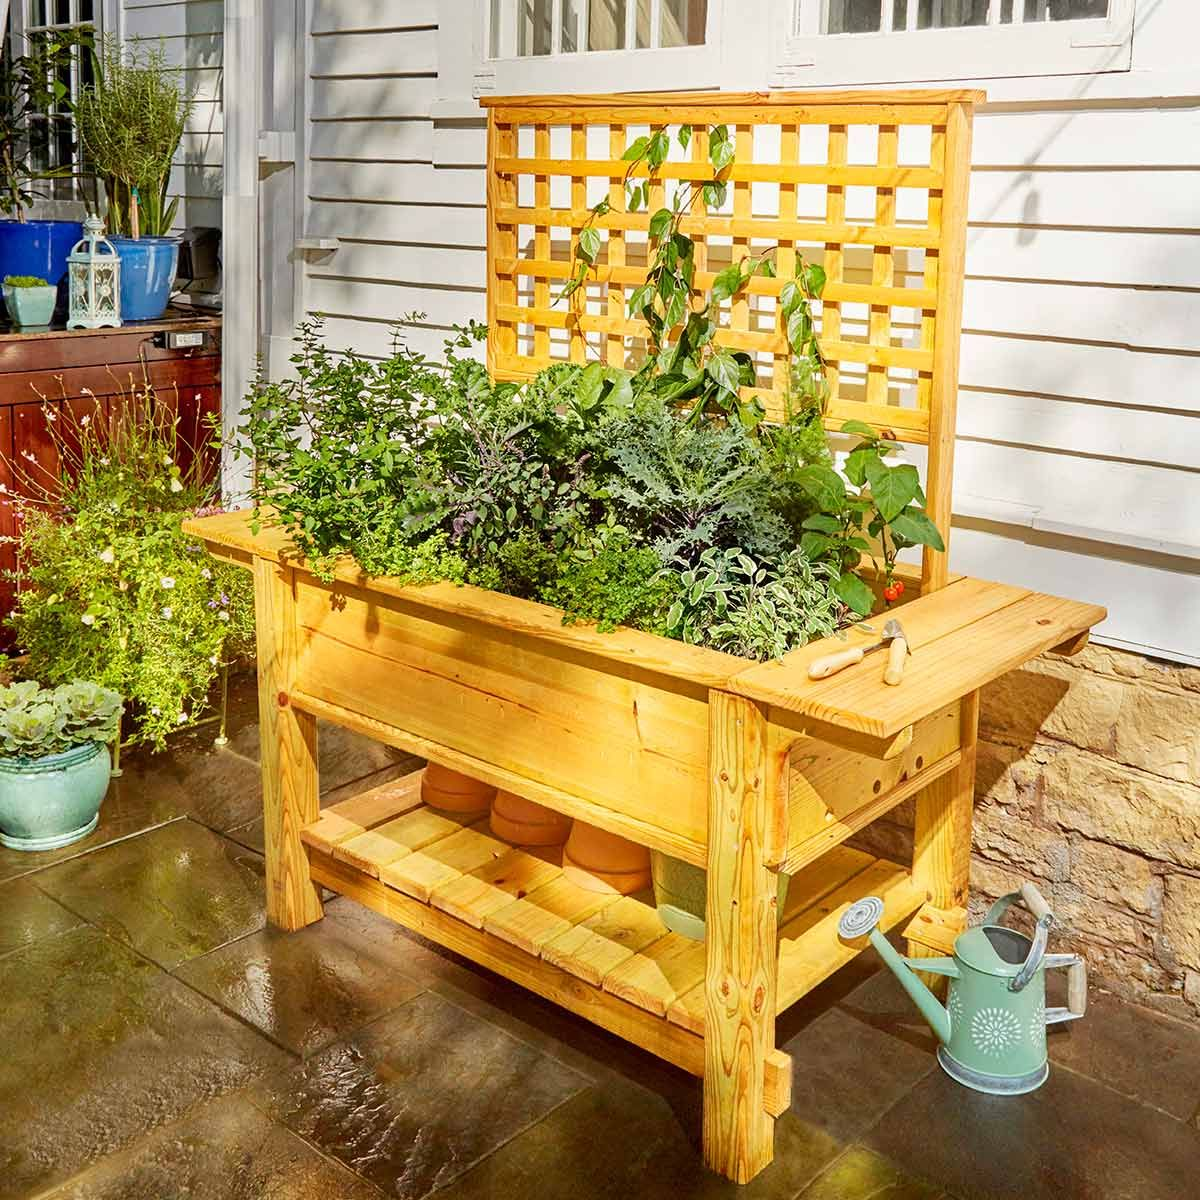 40 outdoor woodworking projects for beginners | diy wood